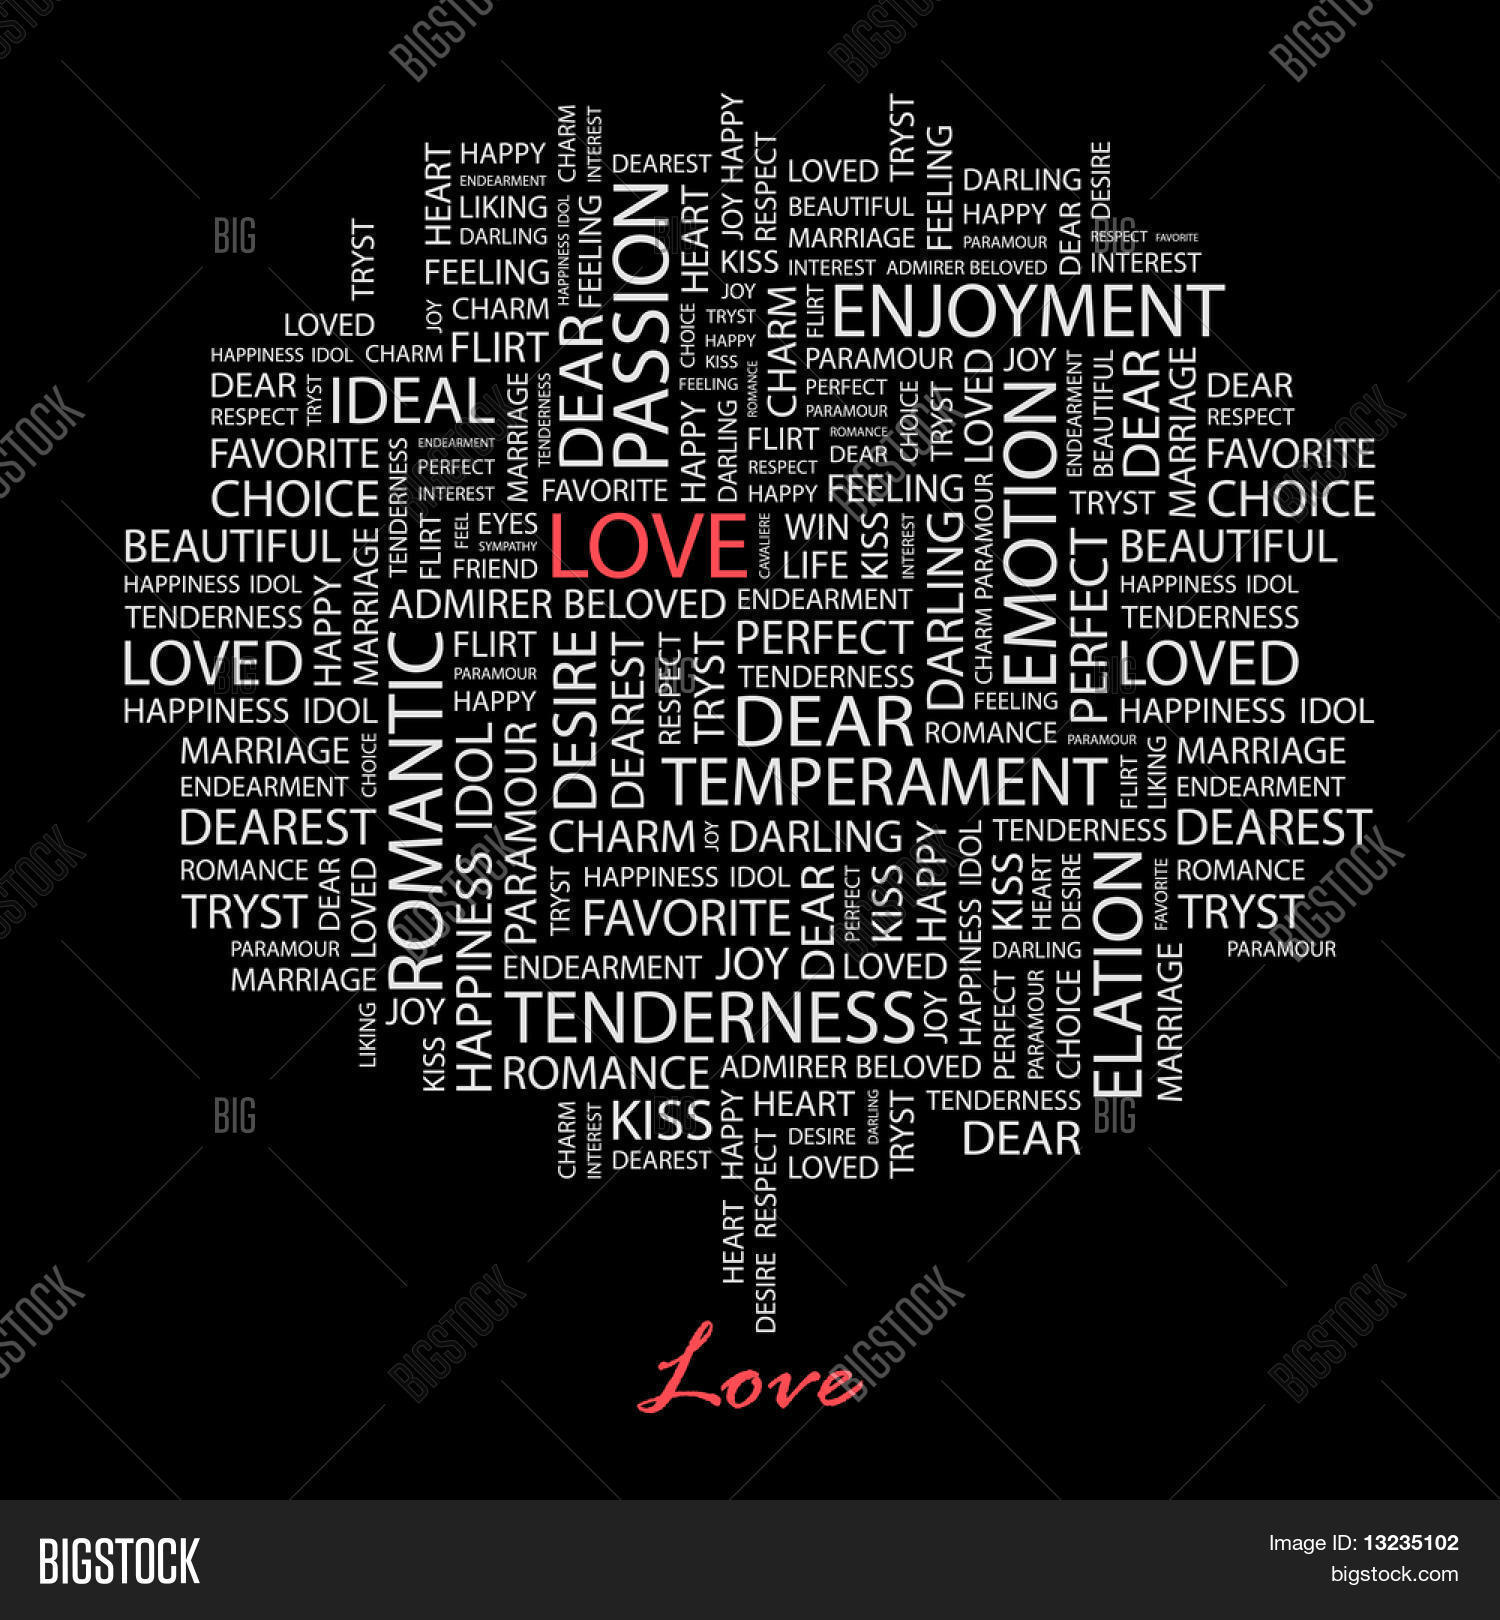 Love Word Collage On Black Background Il Ration With Different Ociation Terms